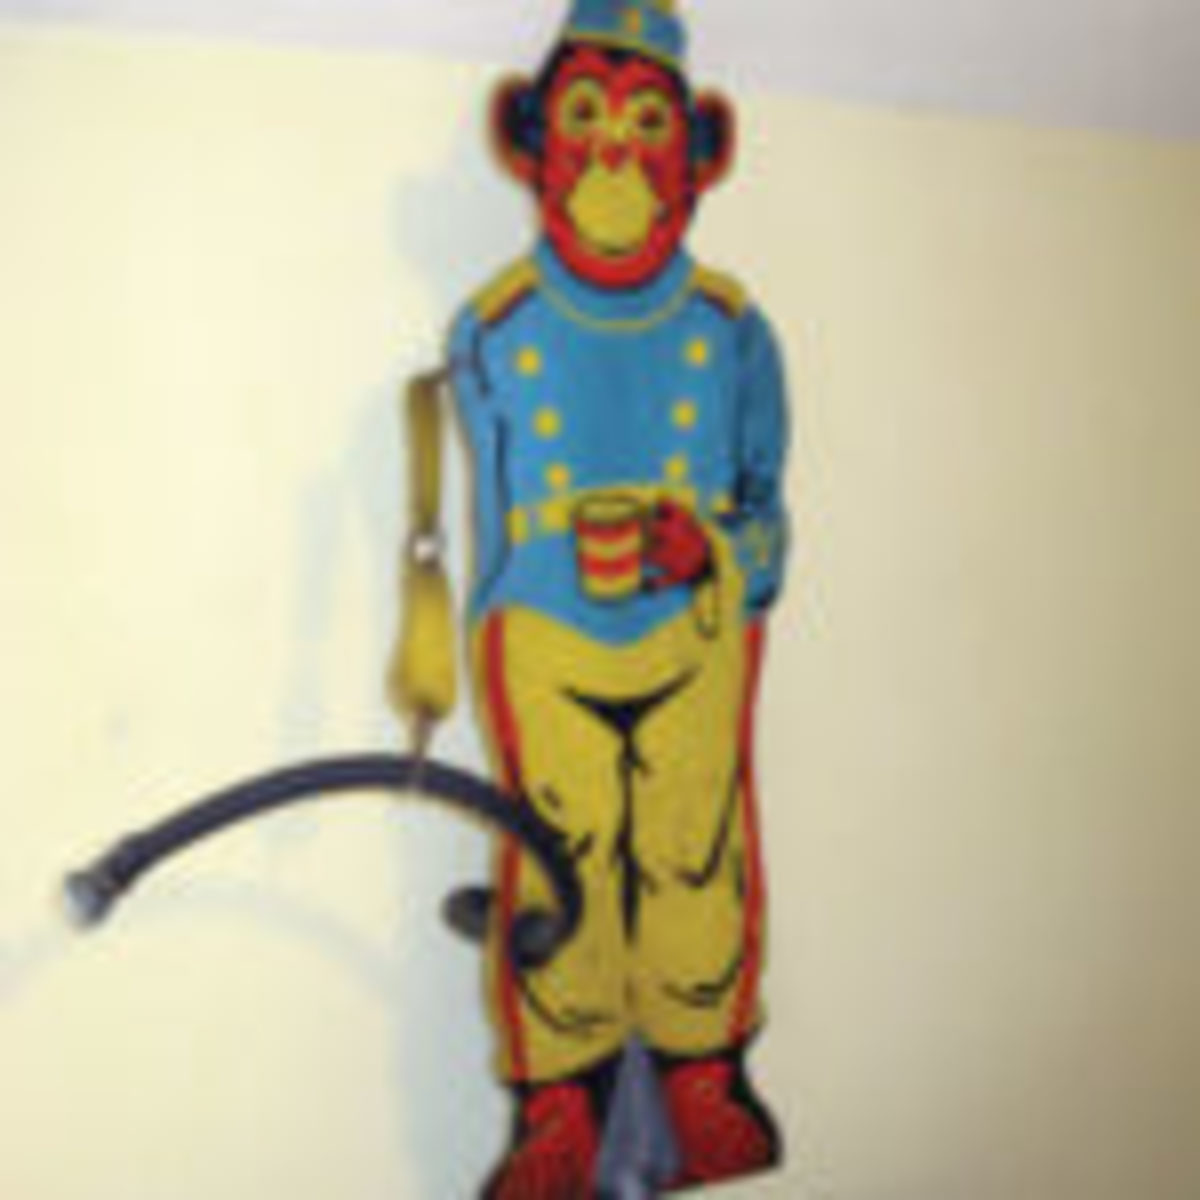 Vintage monkey figural sprinkler; stamped painted metal. Monkey holds black tail, functioning as a hose; as monkey spins water sprays from the hose. Manufacturer unknown. $165. From the author's collection.